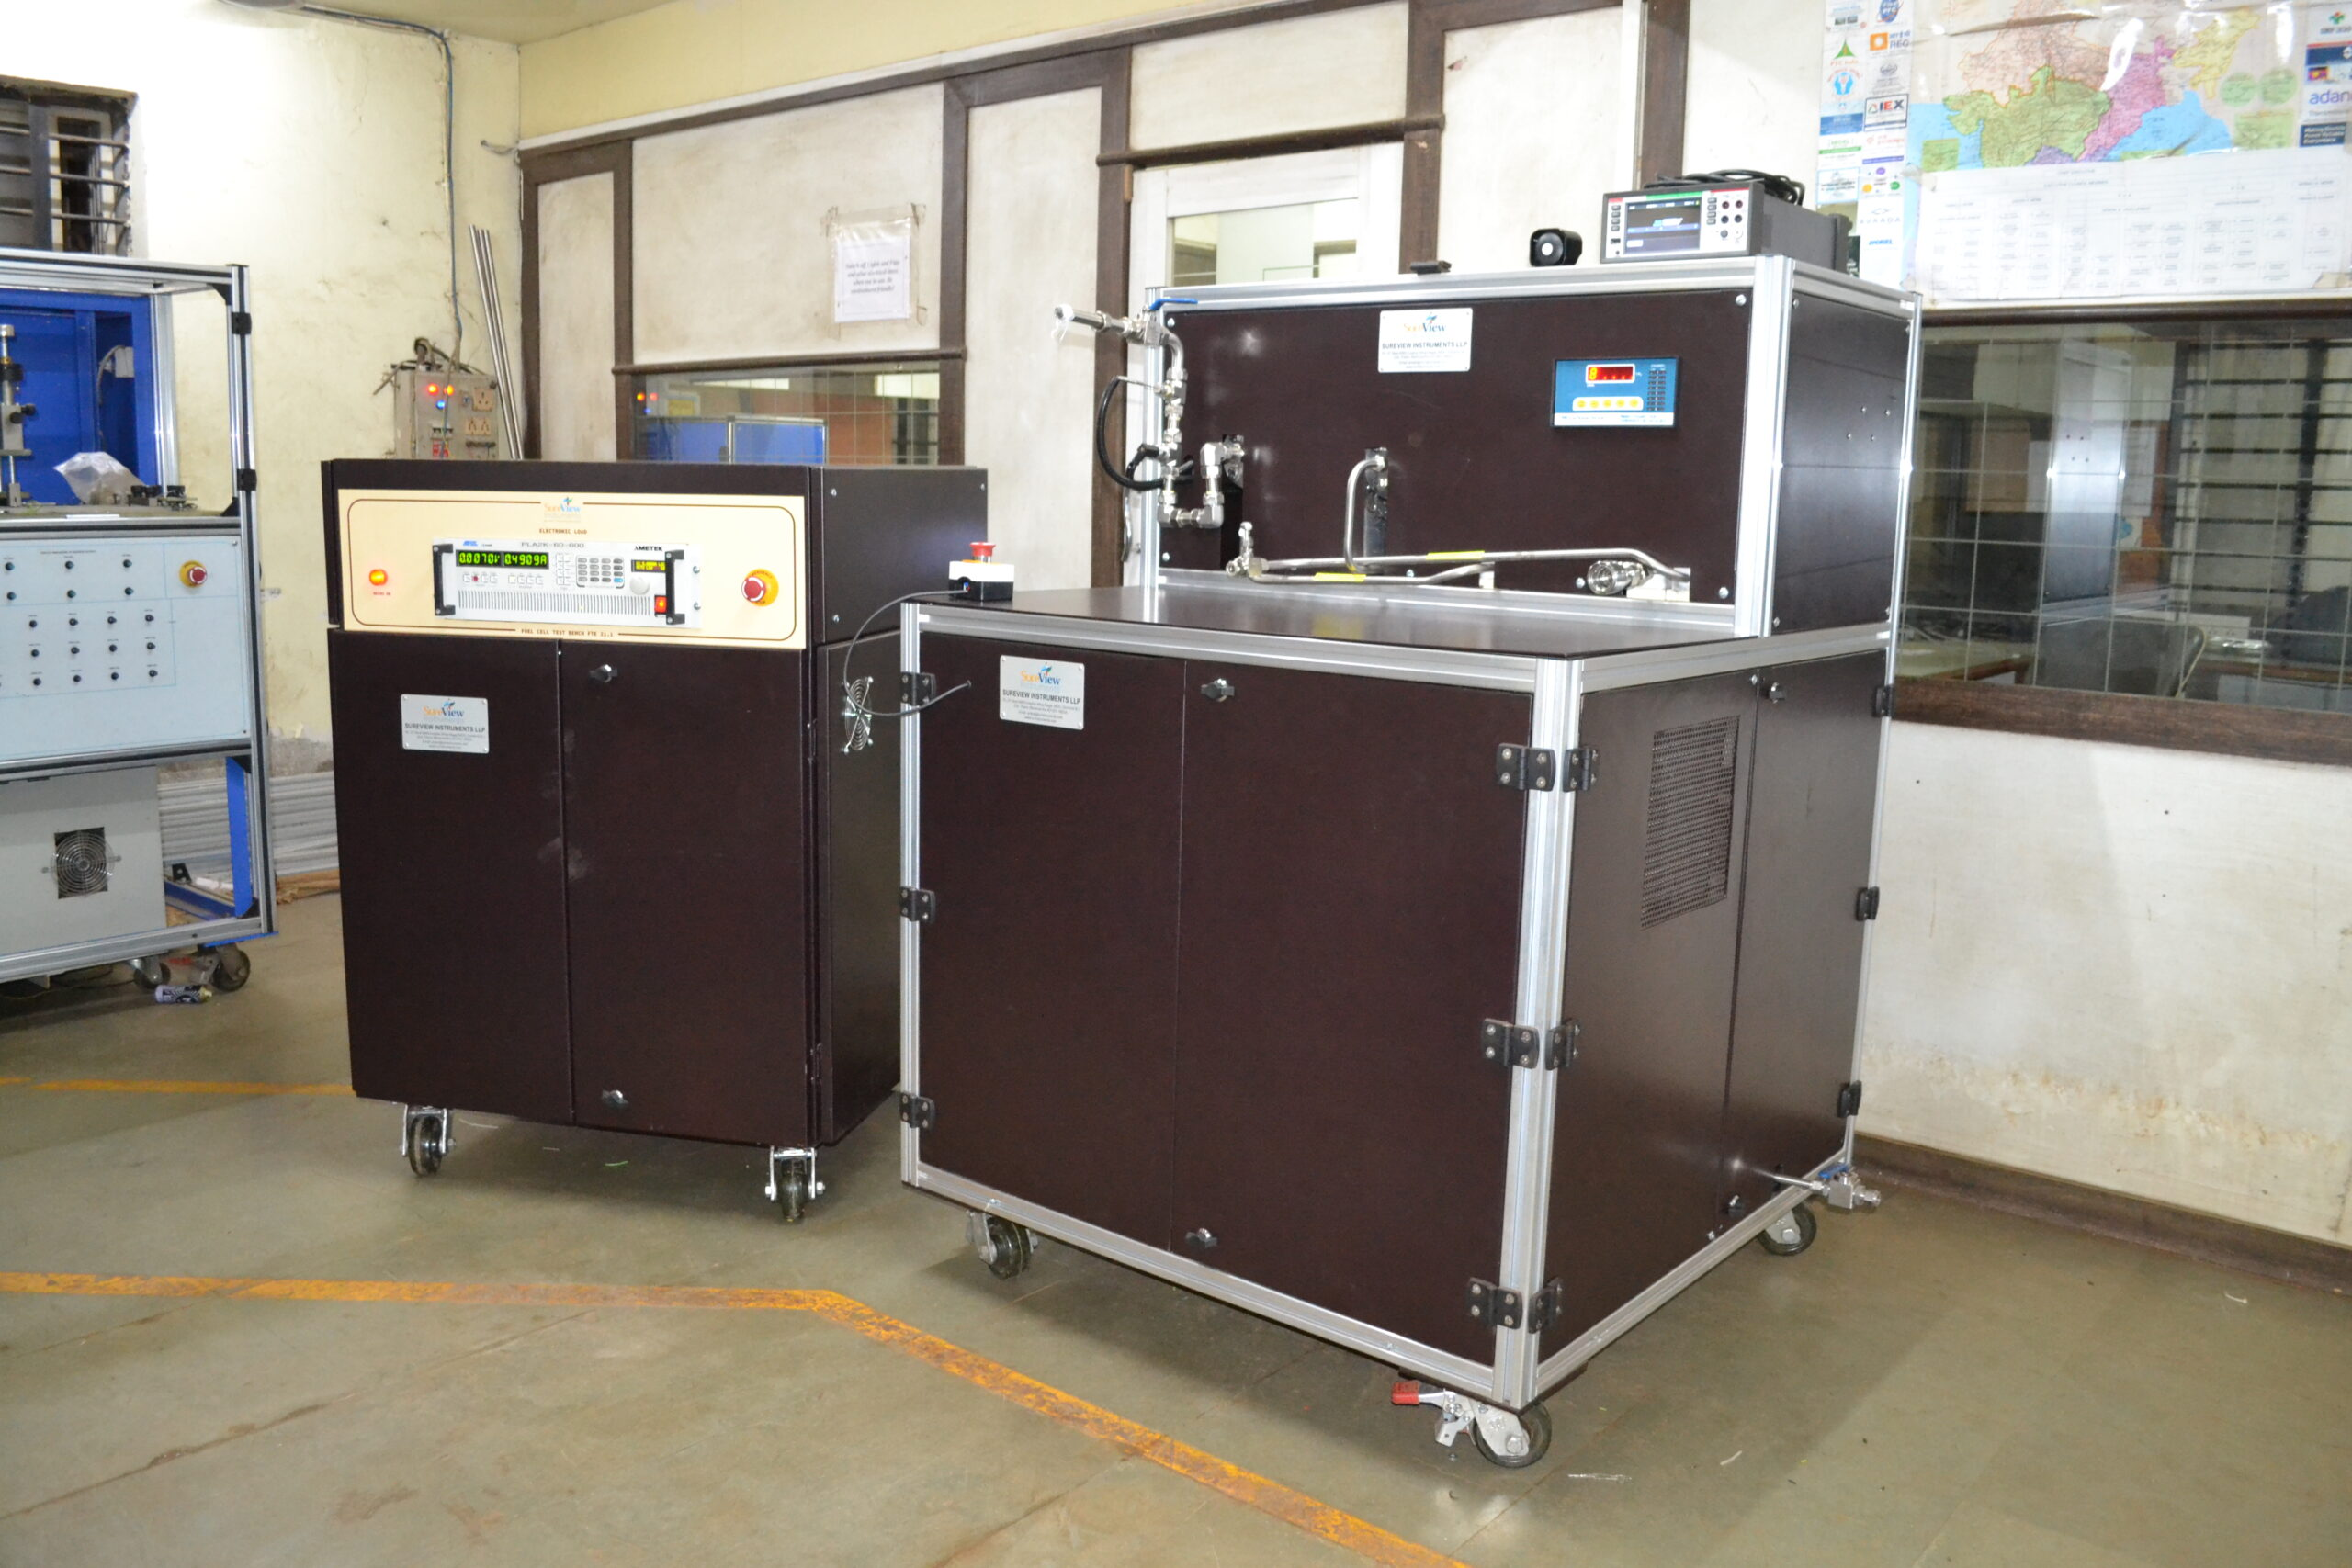 Fuel cell test equipment